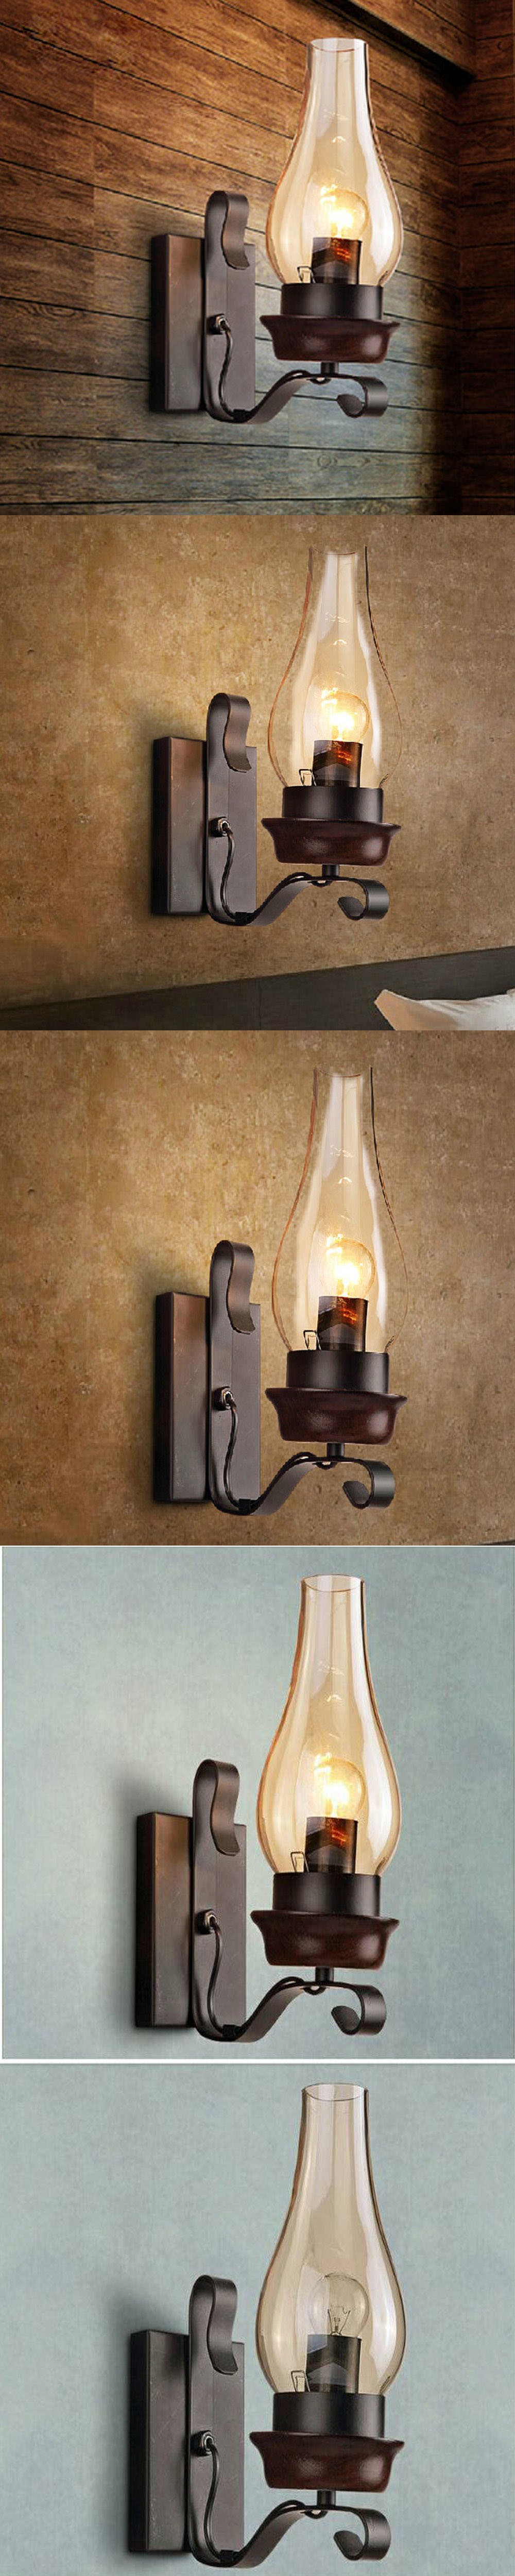 bedside led and light mount reading look fascinating lamps ideas pict wall lamp lovely styles mounted marvelous you can for files